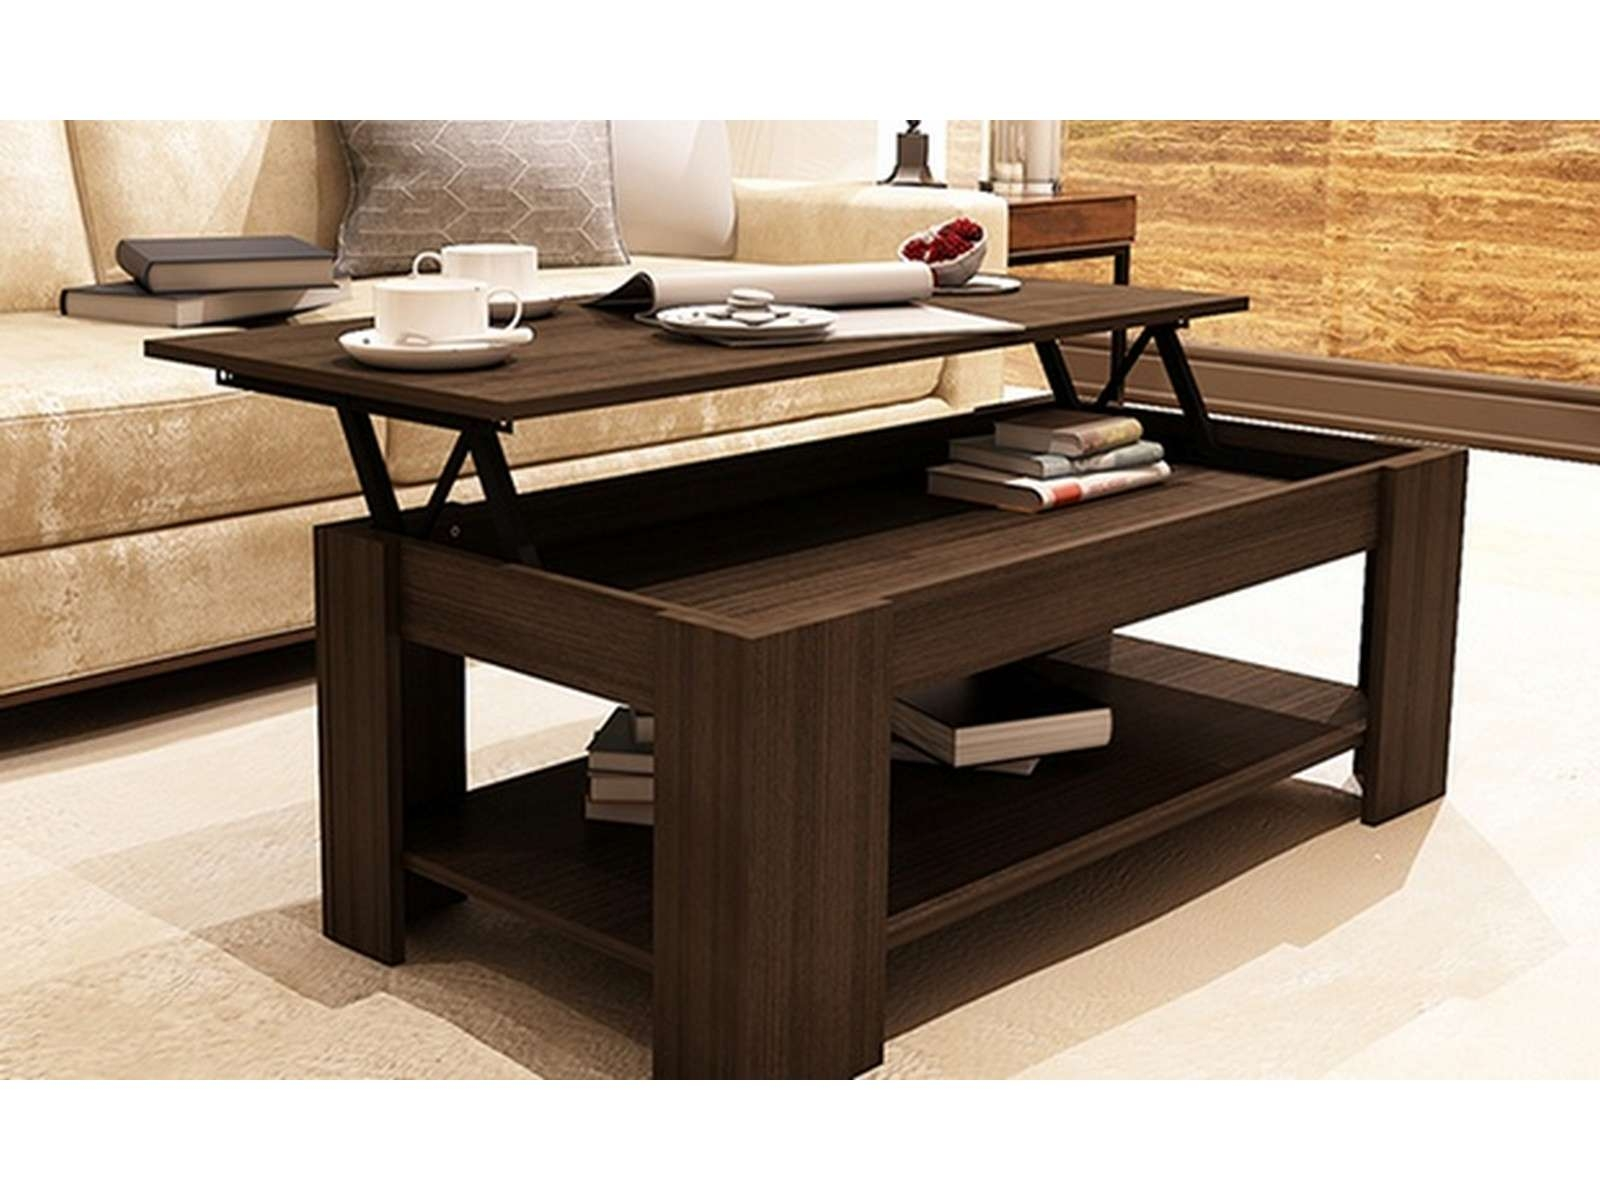 Fashionable Pull Up Coffee Tables Throughout Coffee Table : Wonderful Ikea Table Tops Pull Up Coffee Table C (View 2 of 20)